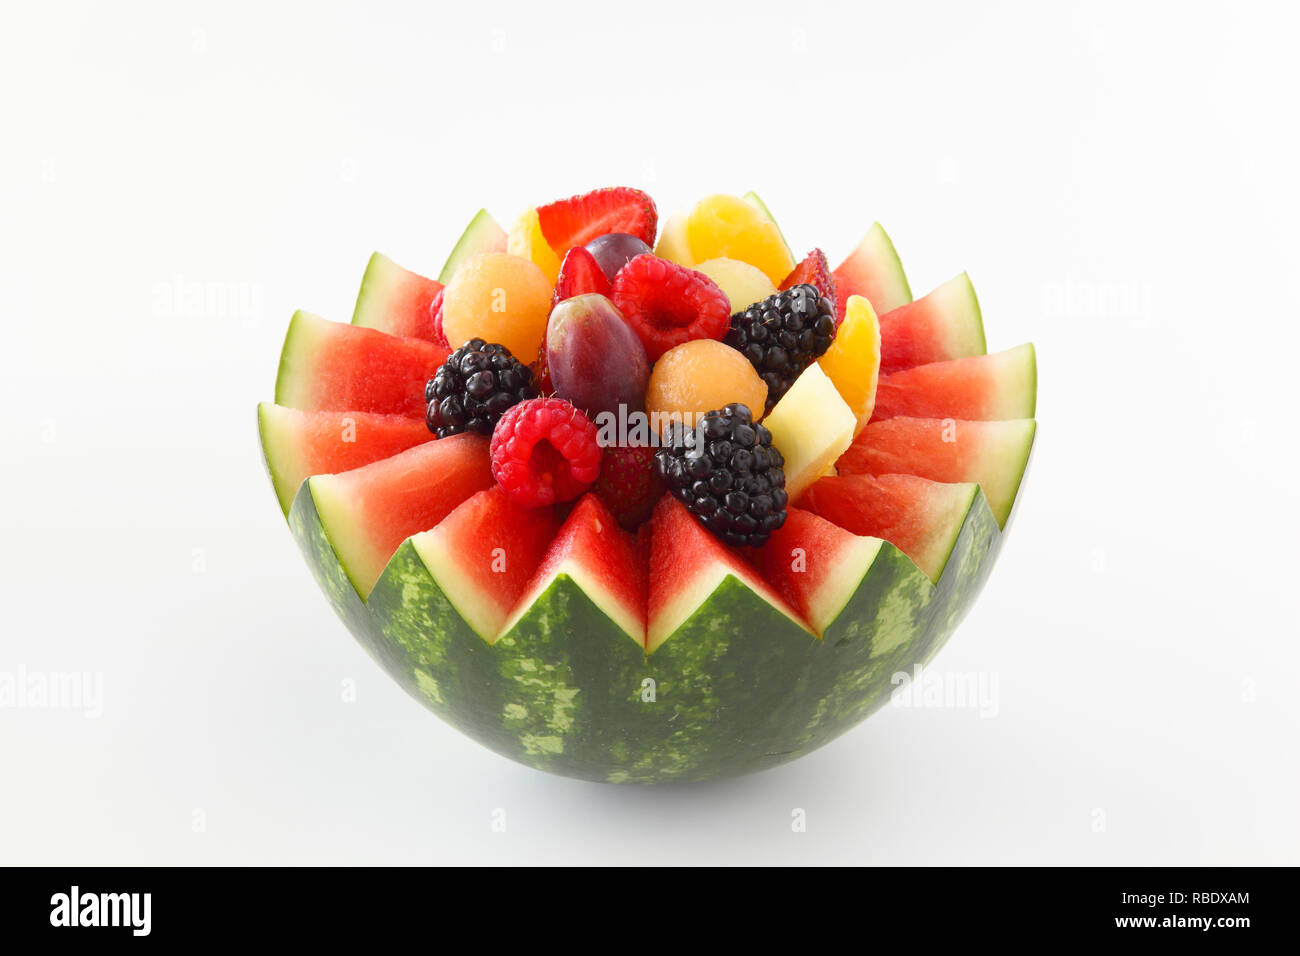 Fancy cut watermelon on a white background with assorted fruit inside like berries, grapes, pineapple, oranges - Stock Image